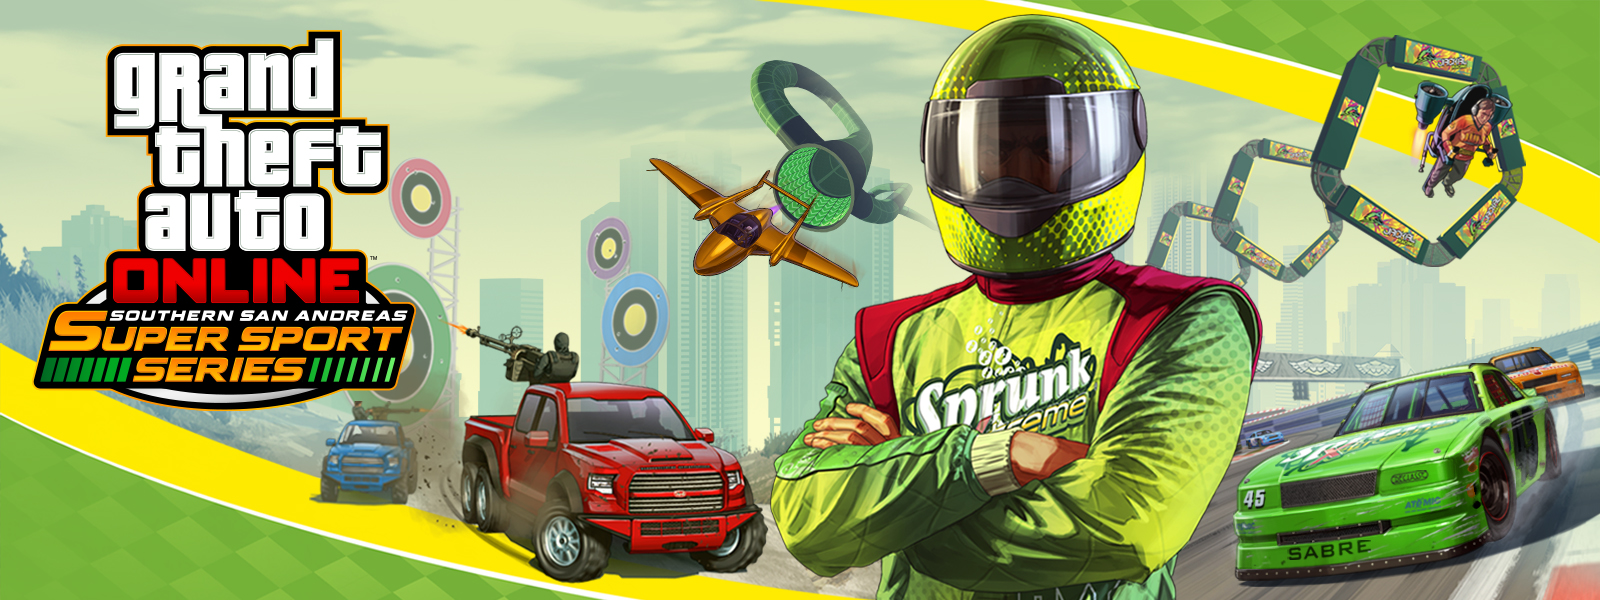 Grand Theft Auto Online Southern San Andreas Super Sport Series, Sprunk Racecar driver stands with his arms crossed in front of many different types of races in the background